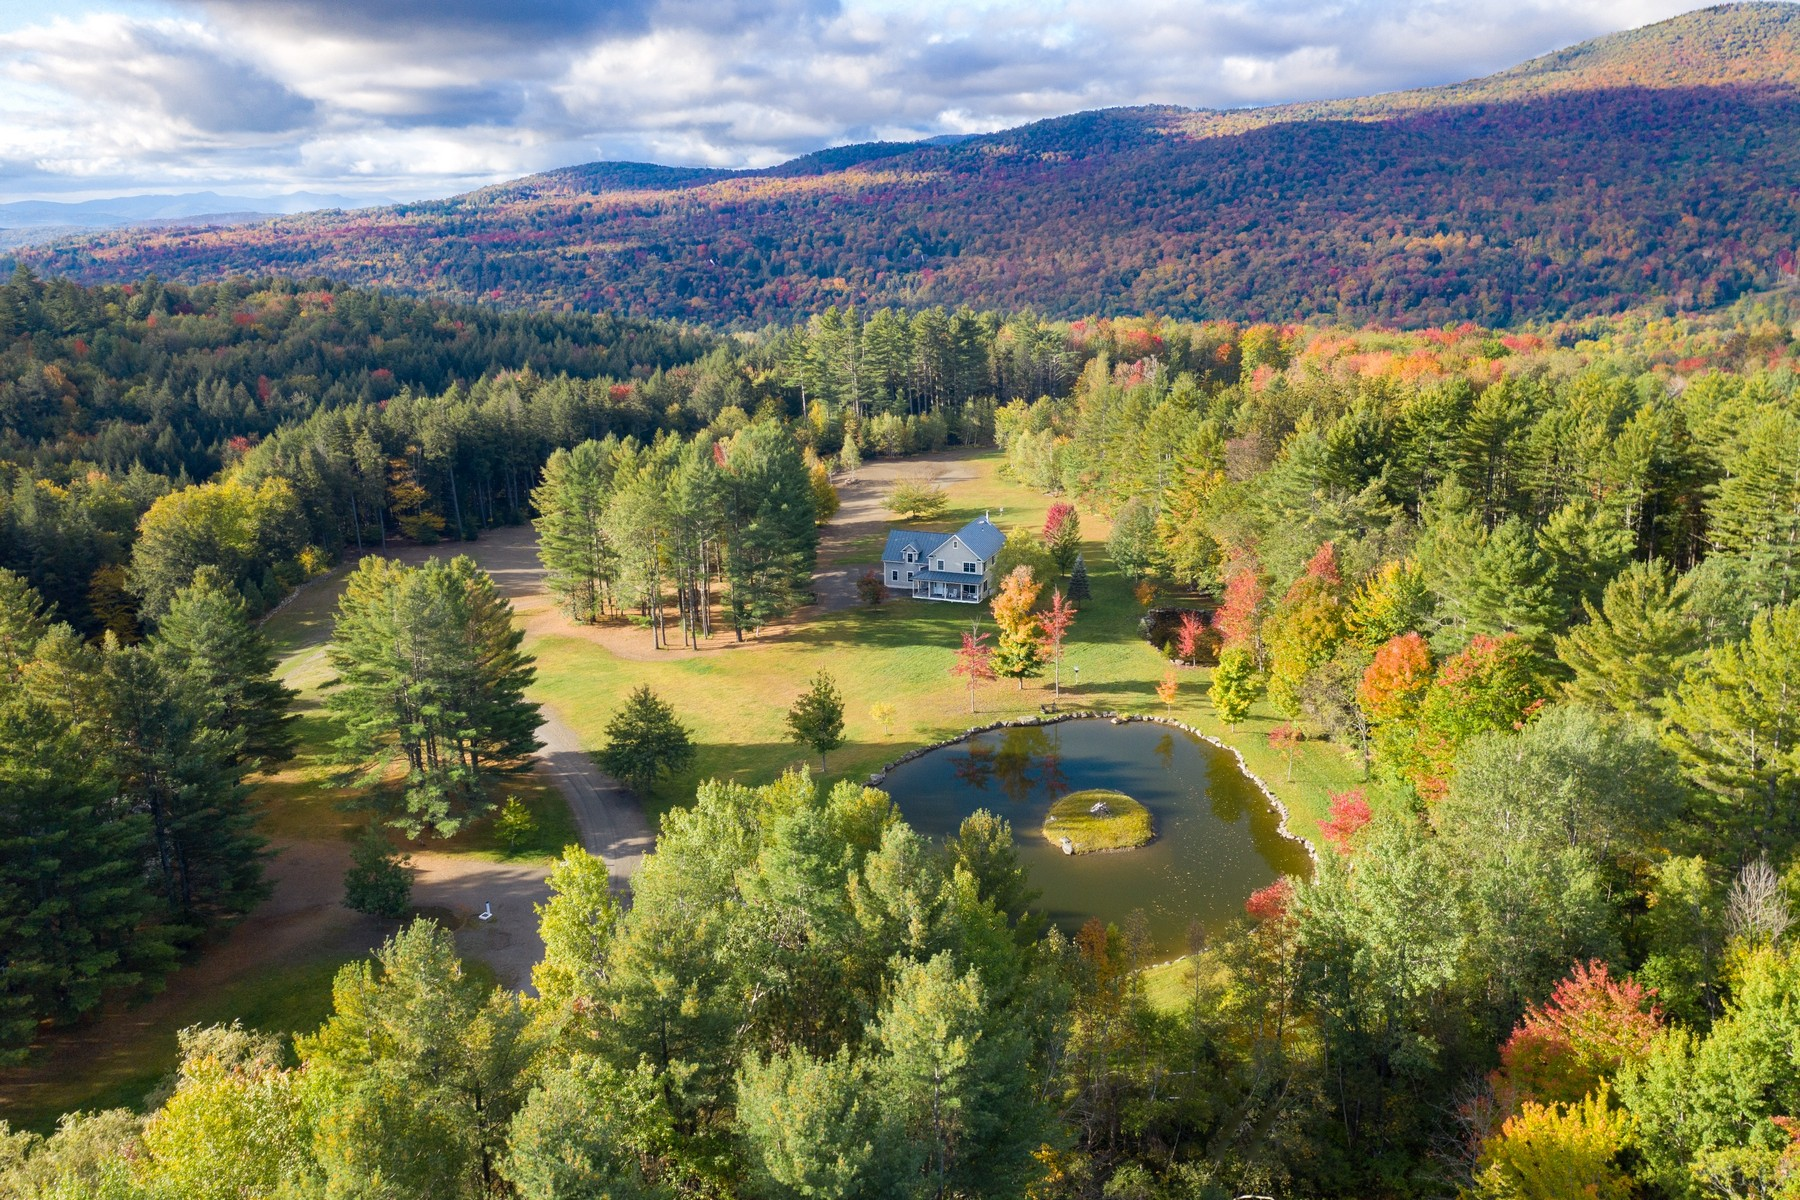 Single Family Homes for Sale at 989 Edson Hill Road, Stowe 989 Edson Hill Rd Stowe, Vermont 05672 United States